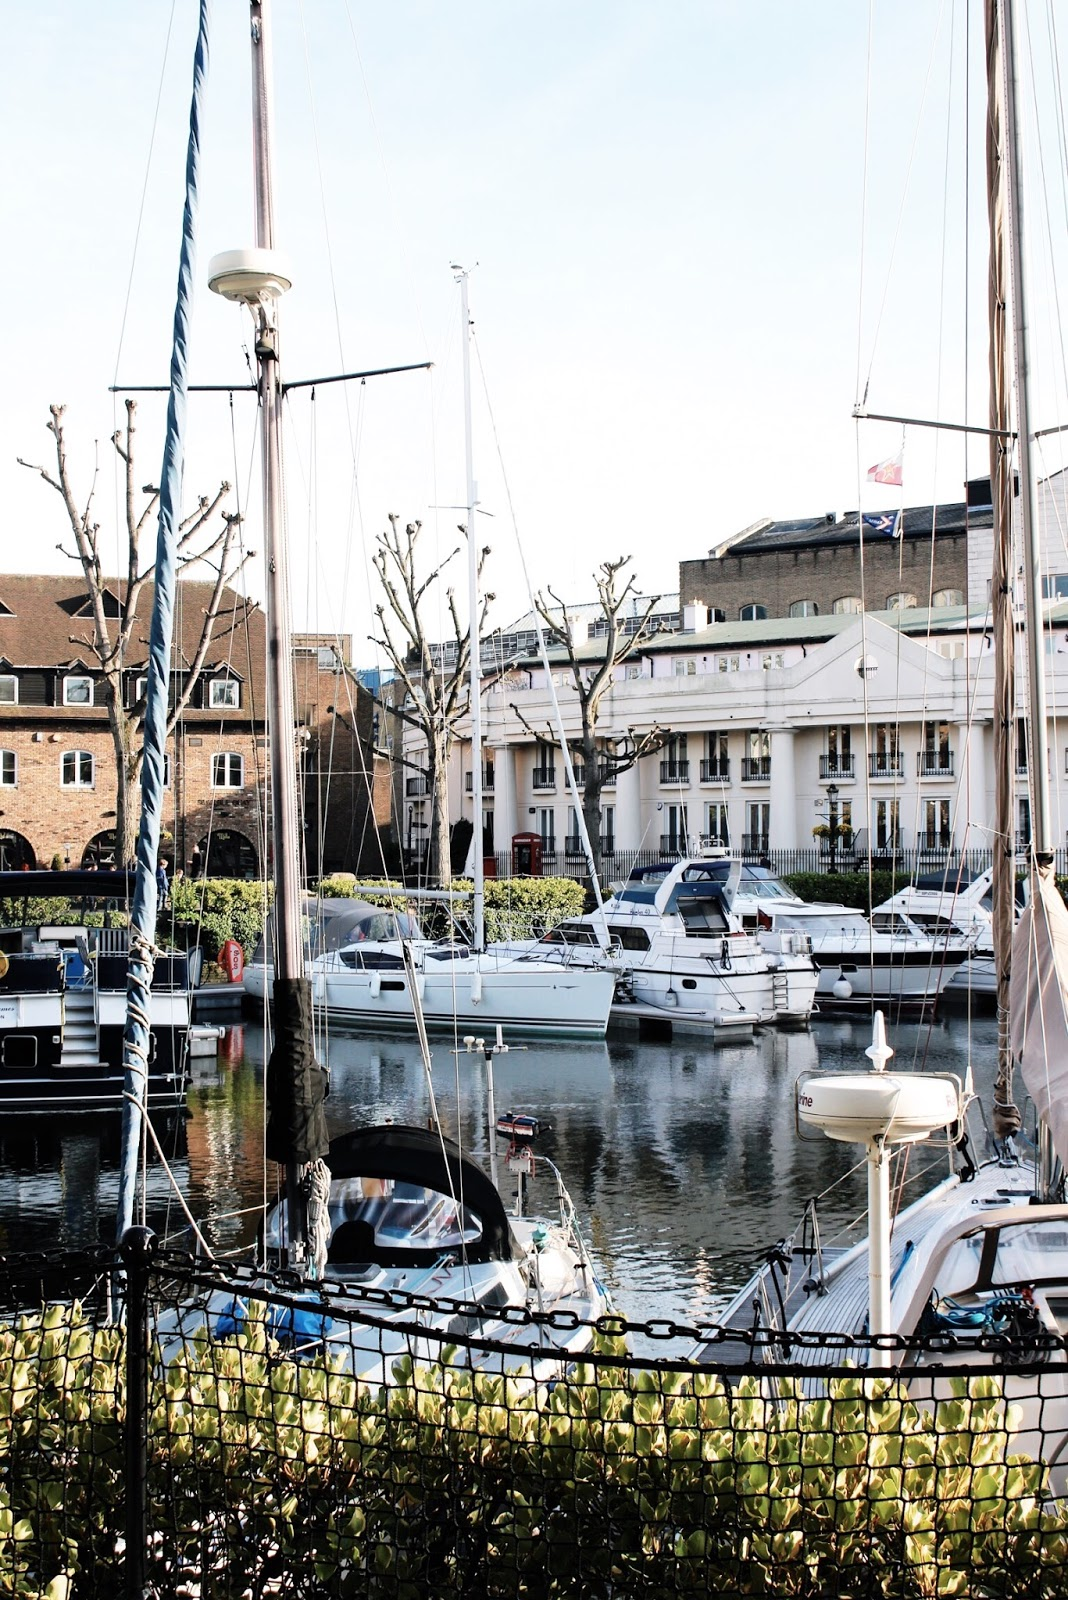 Boats at St Katharine Docks Summer